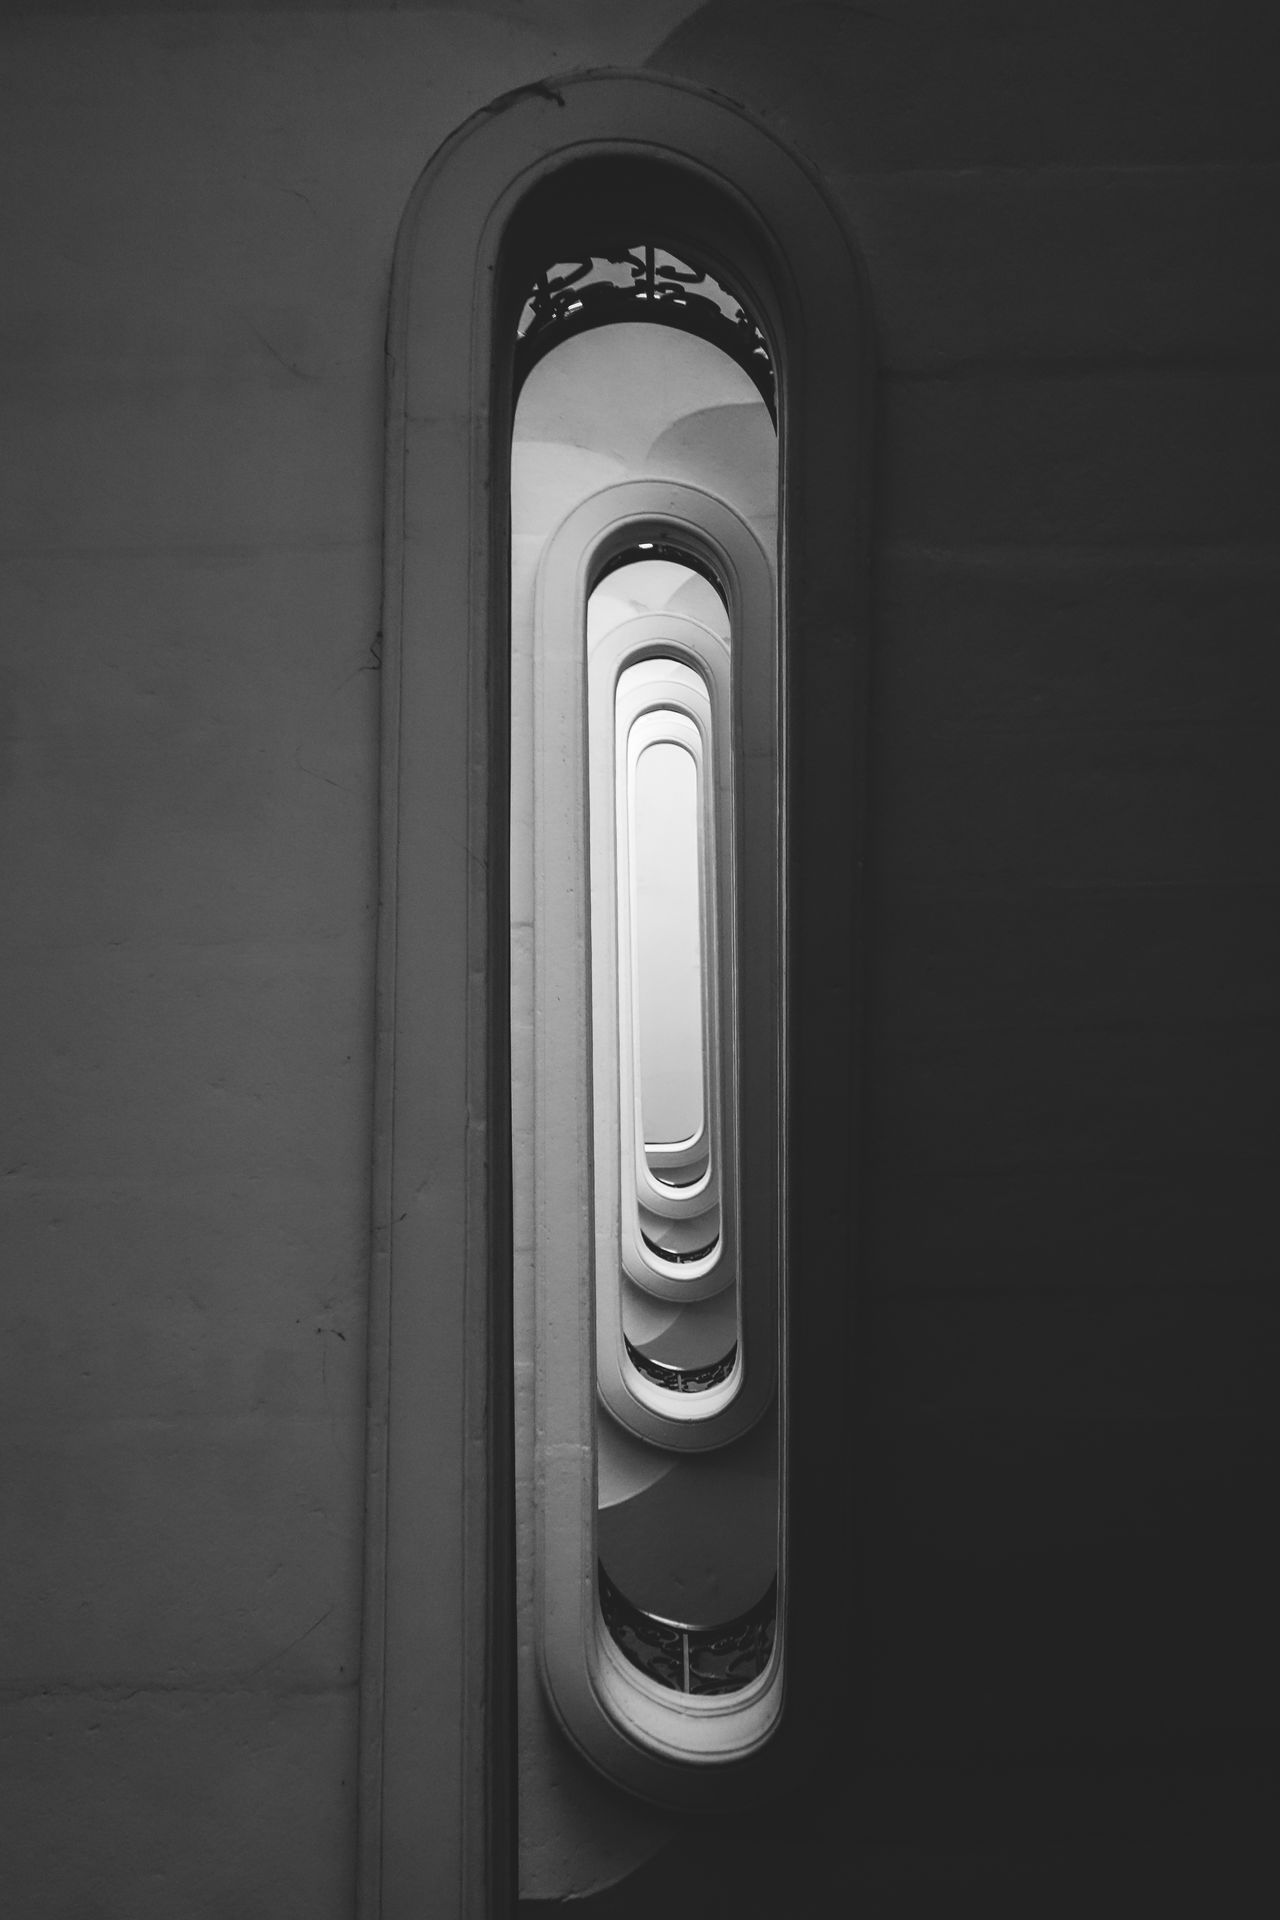 Architecture Architecture Built Structure Close-up Day Hypnotic Indoors  Light No People Spiral Stairs Twilight